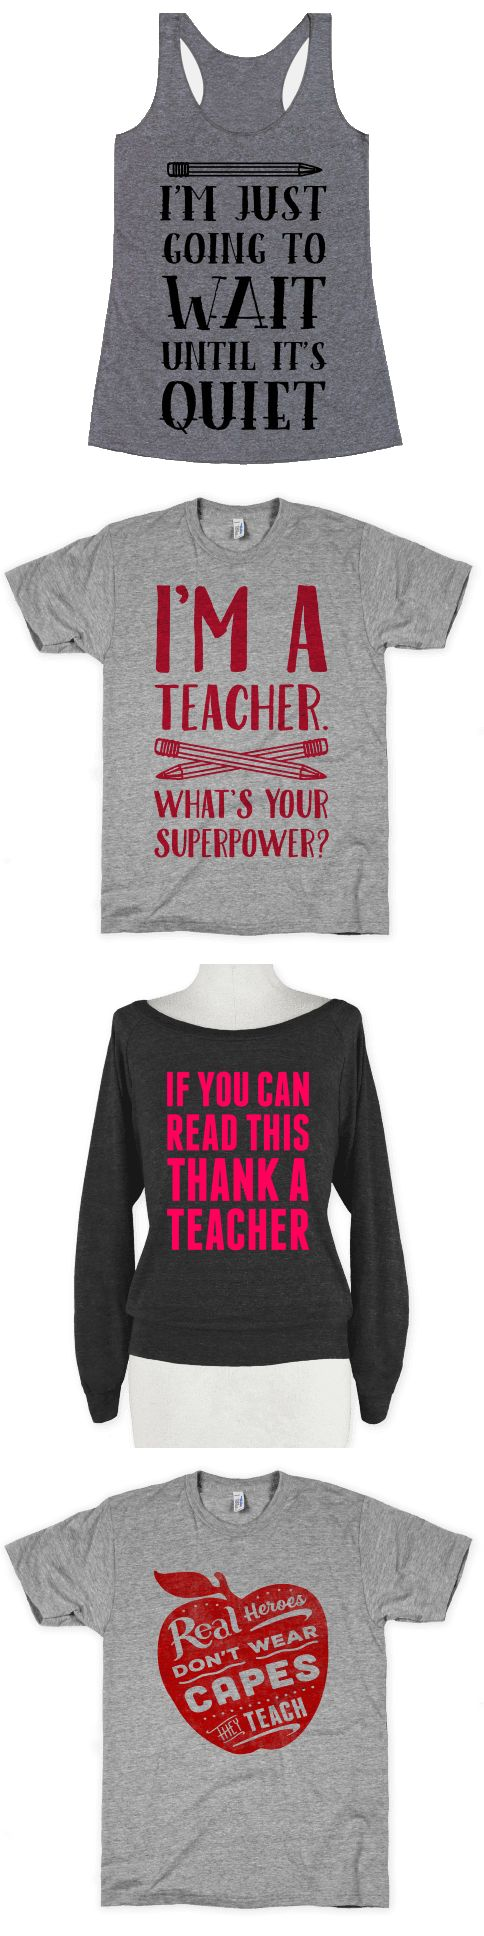 Design your own t shirt lesson plan - If Teaching Is Your Super Power These Shirts Challenging Those Who Stand Against Knowledge Are